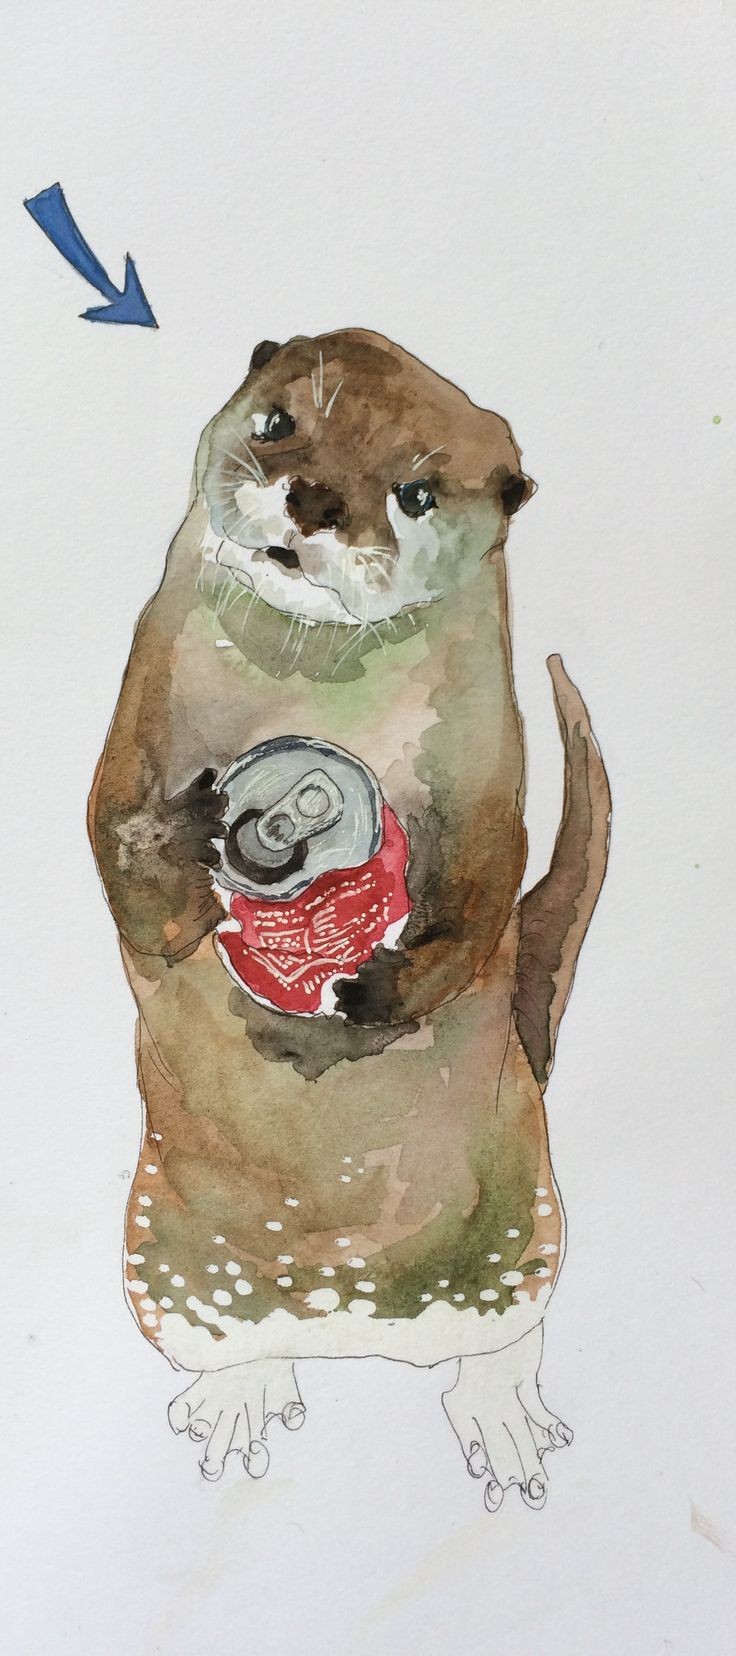 An otter and his addiction